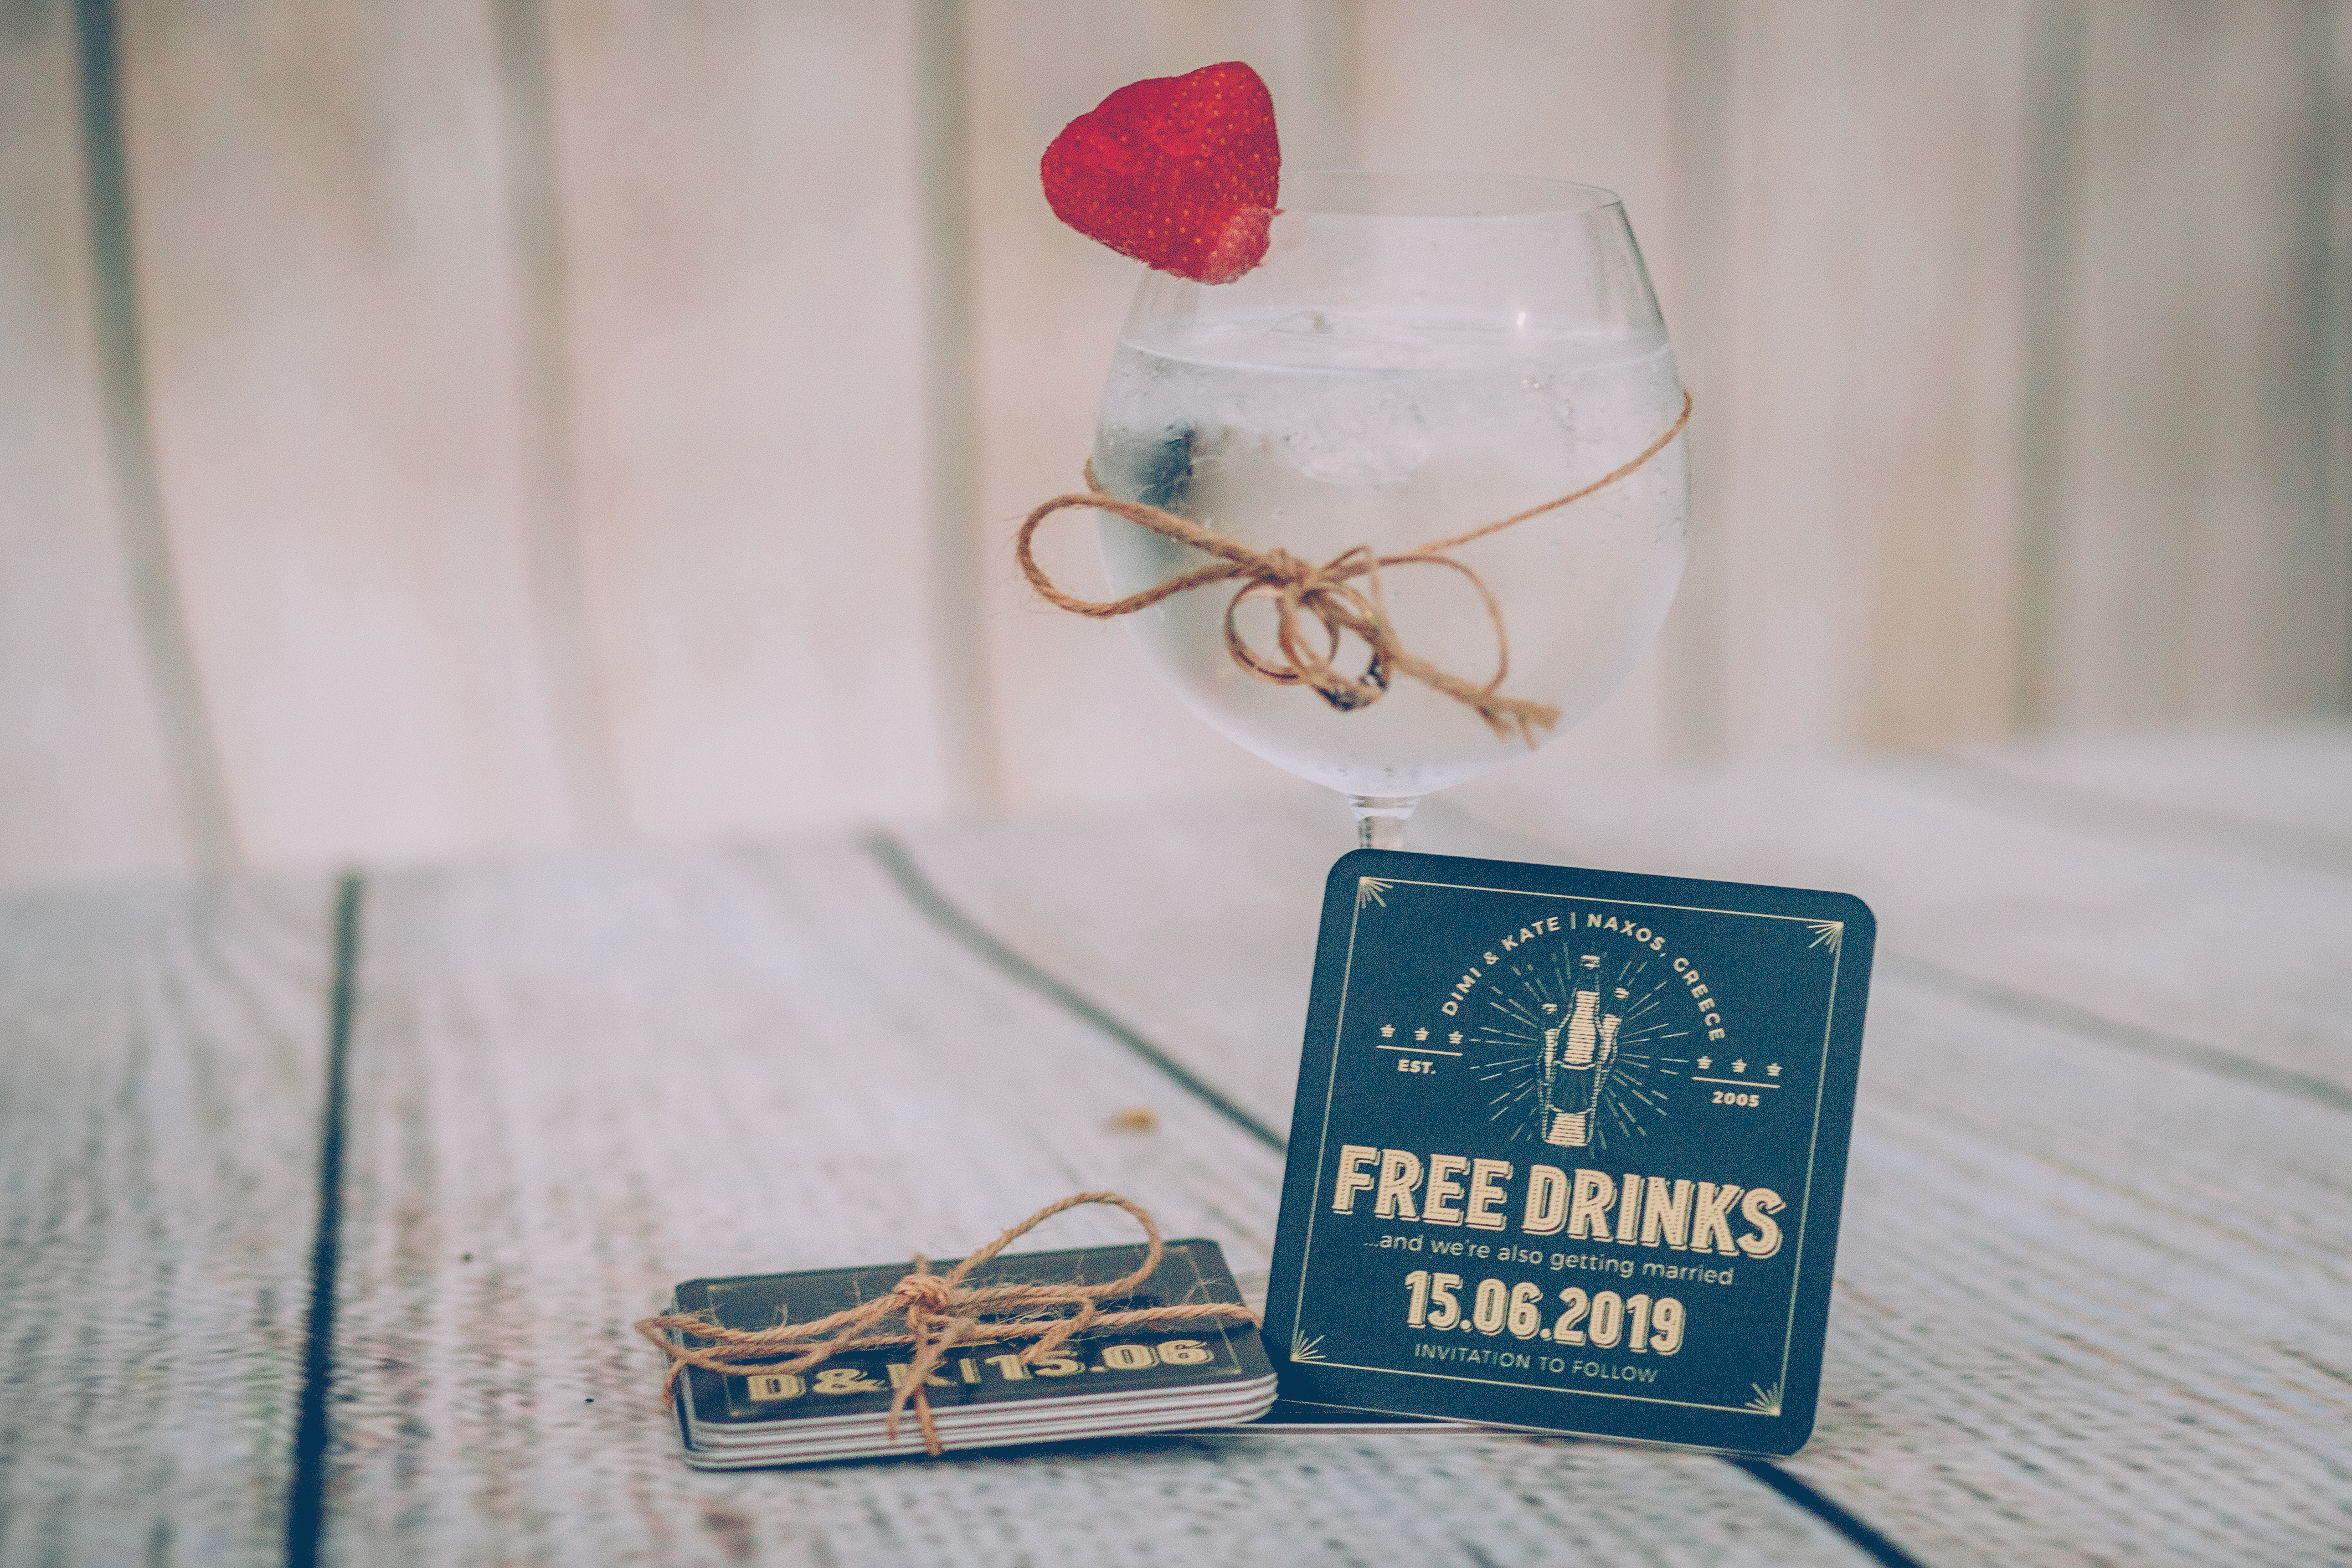 Bespoke coasters by Kate Stergiou